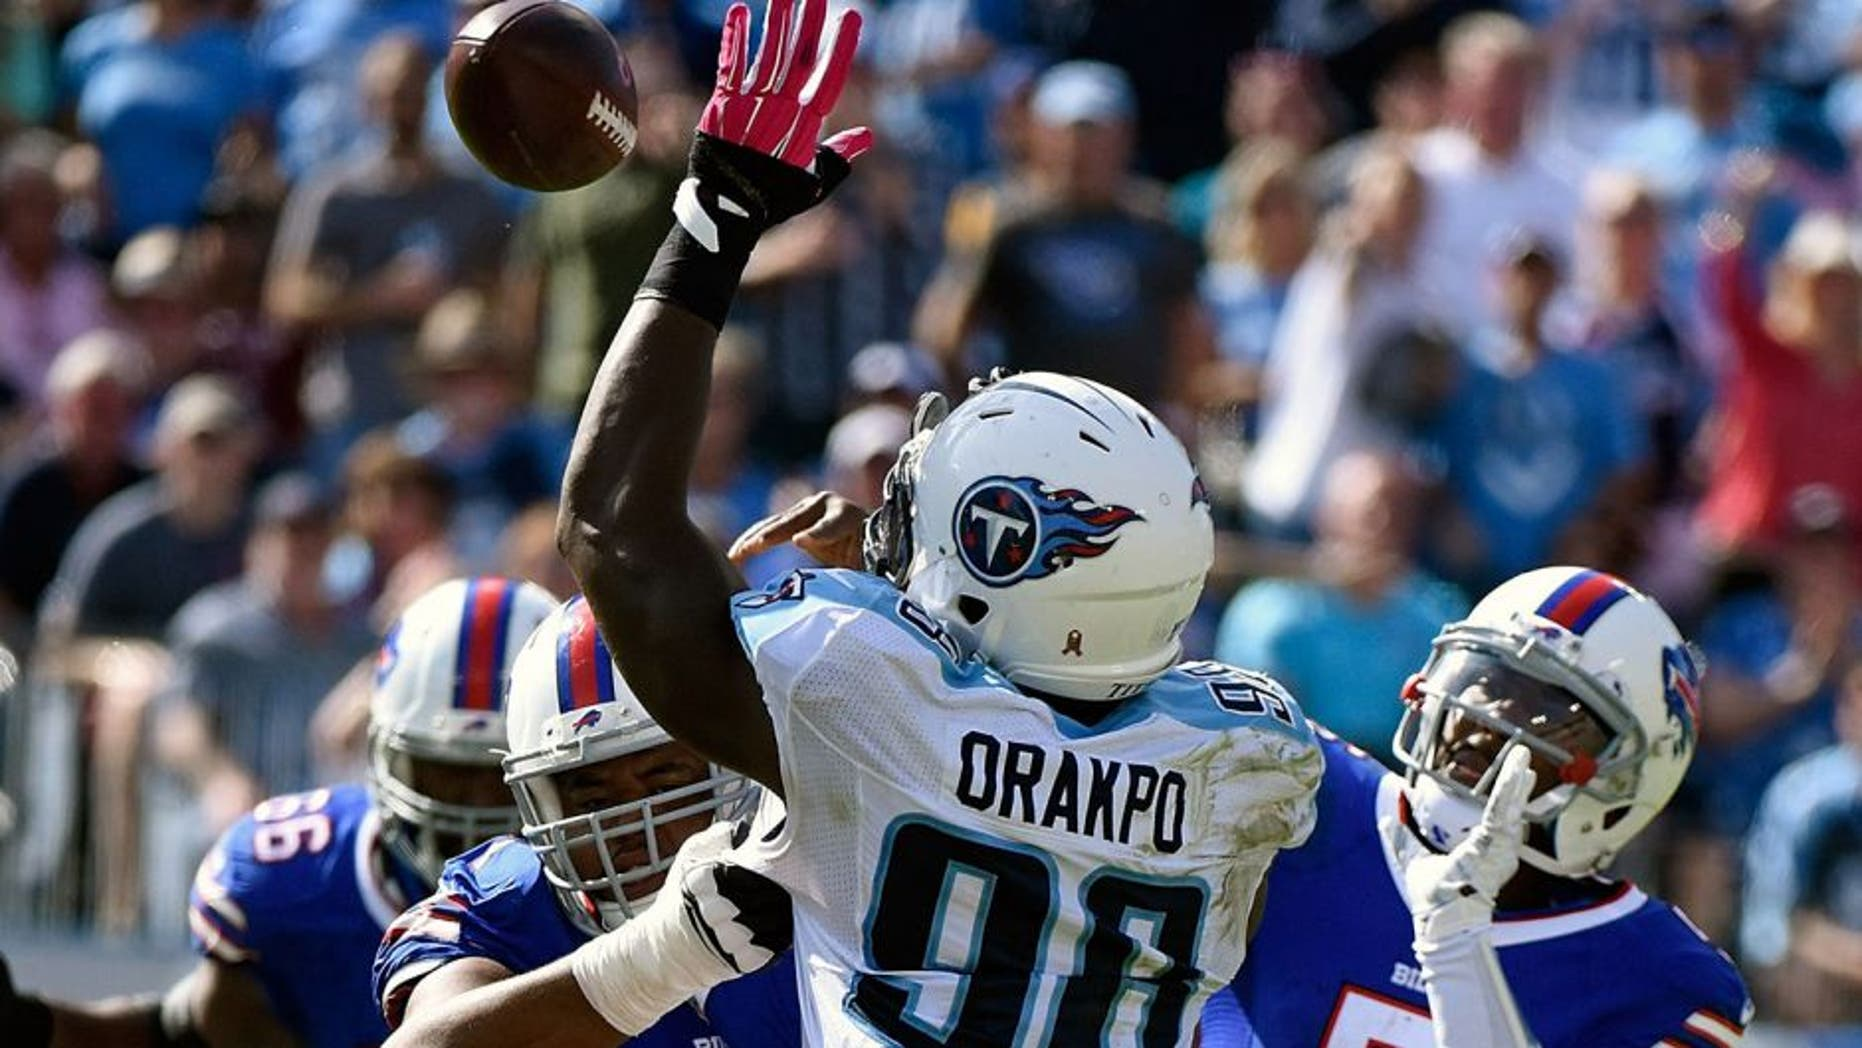 NASHVILLE, TN - OCTOBER 11: Quarterback Tyrod Taylor #5 of the Buffalo Bills passes the ball over Brian Orakpo #98 of the Tennessee Titans during the second half of a game at Nissan Stadium on October 11, 2015 in Nashville, Tennessee. (Photo by Frederick Breedon/Getty Images)